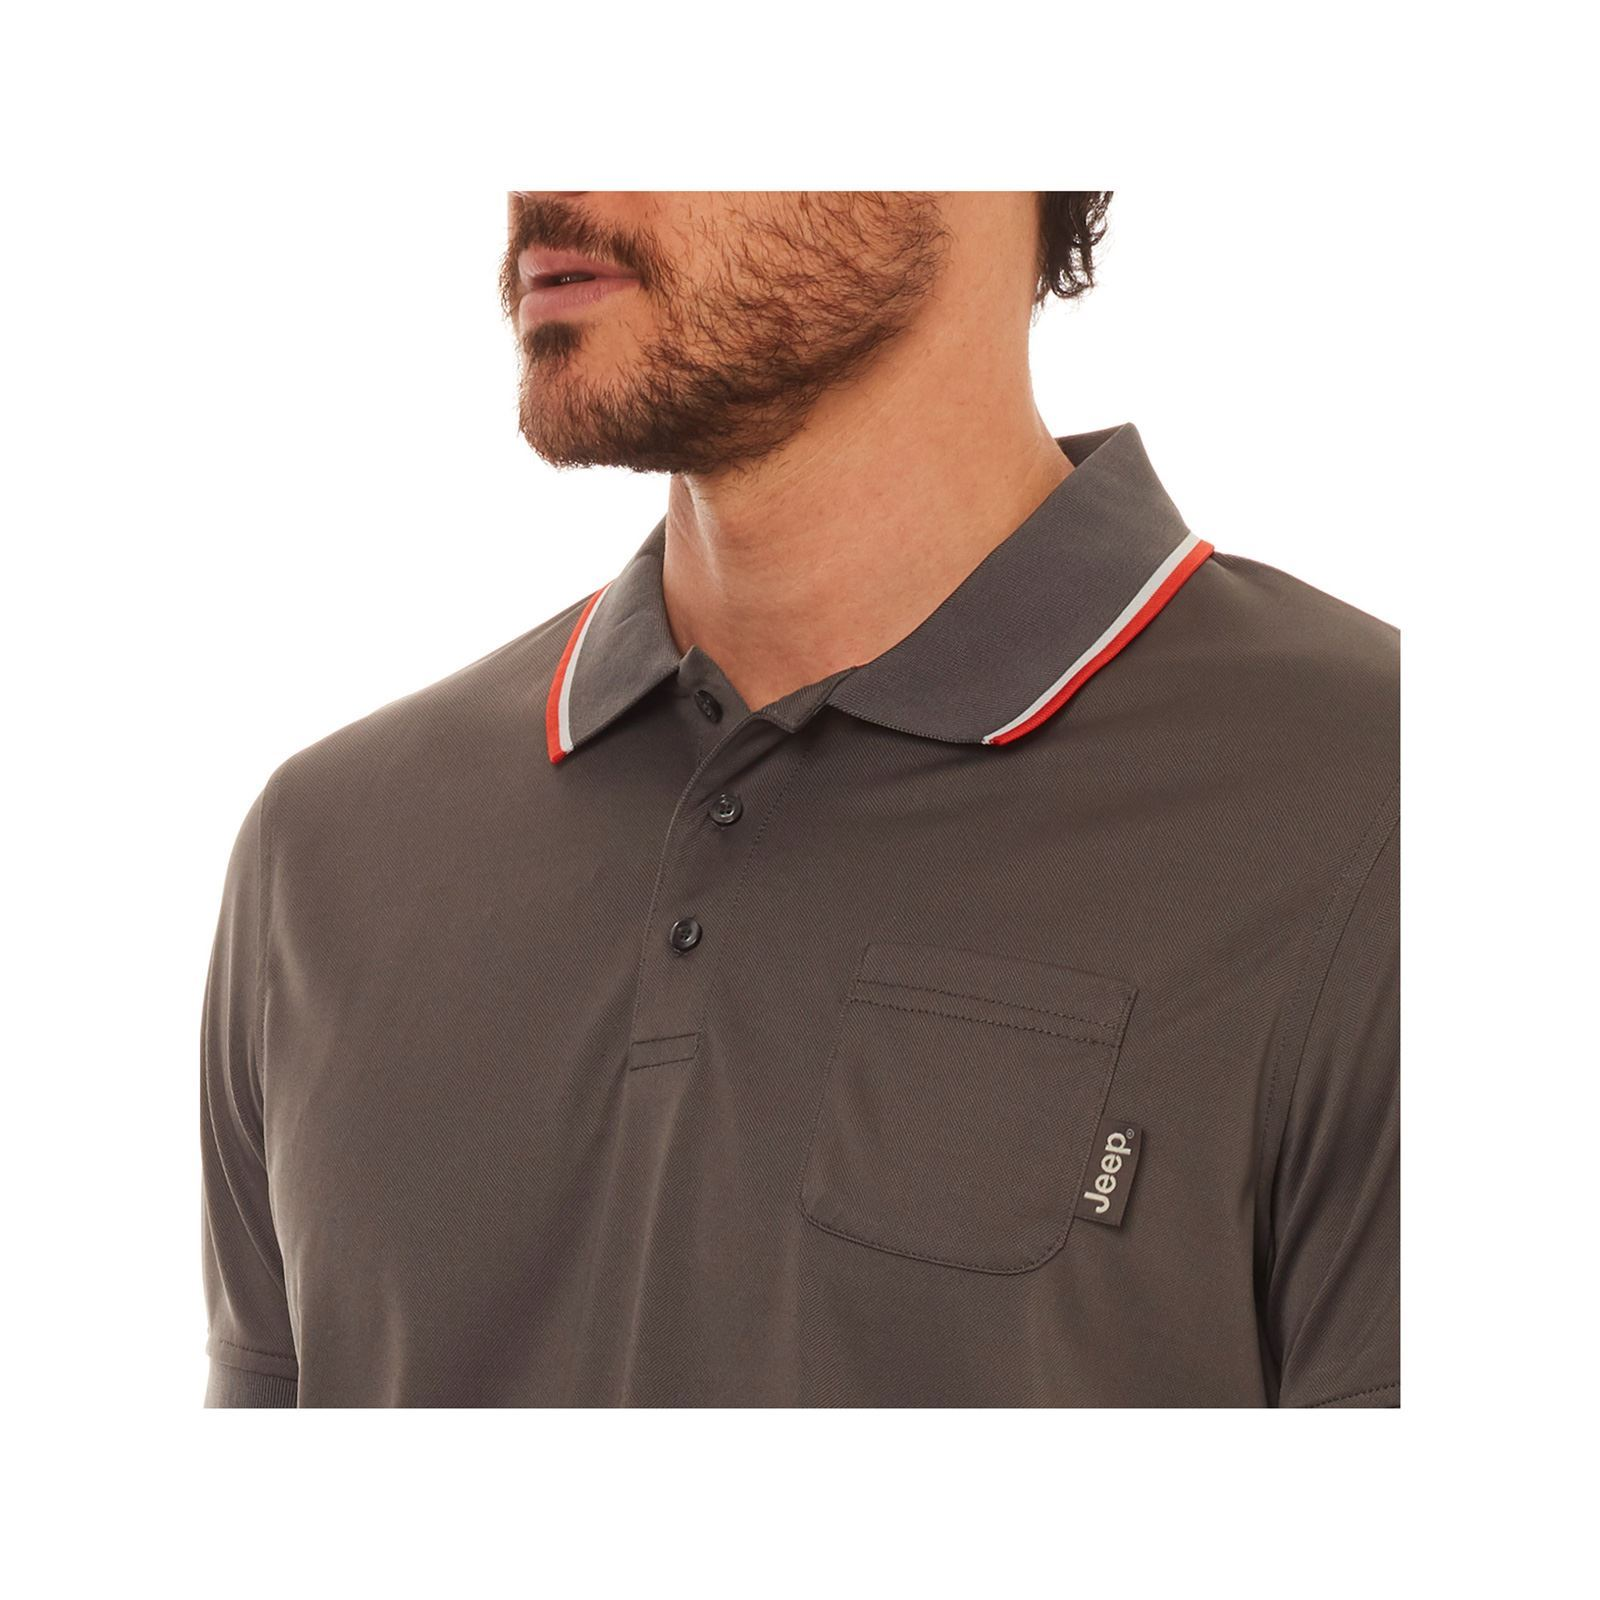 V Jeep Manches Polo CourtesGris Homme 8n0wOkP